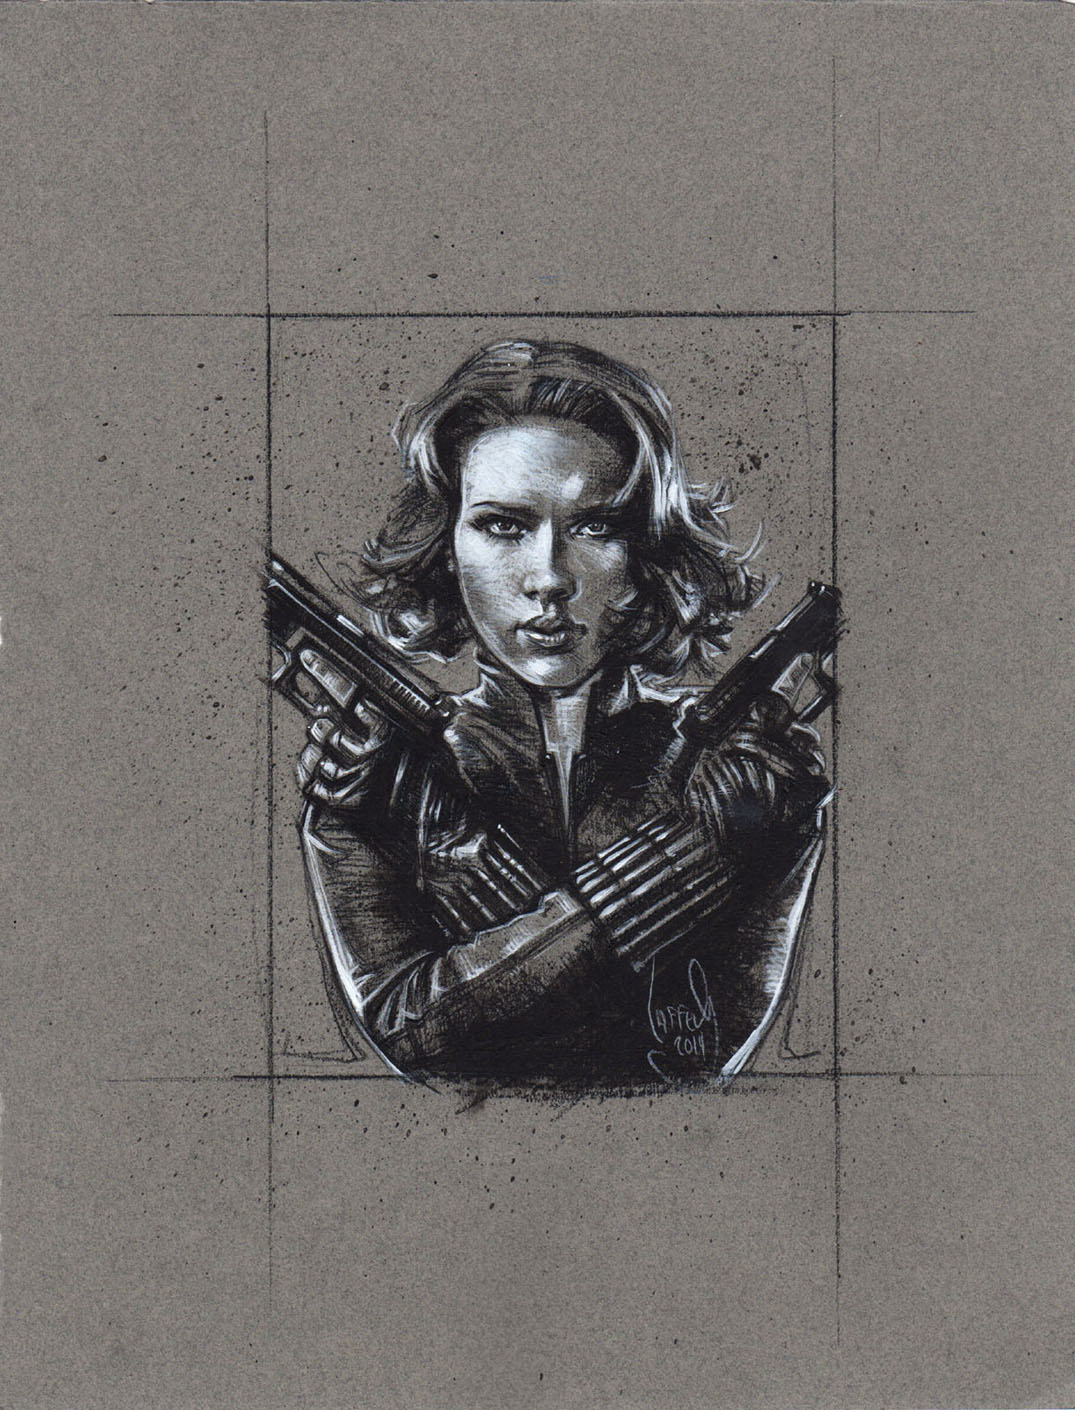 Scarlett Johanssen as Black Widow, Artwork is Copyright © 2014 Jeff Lafferty